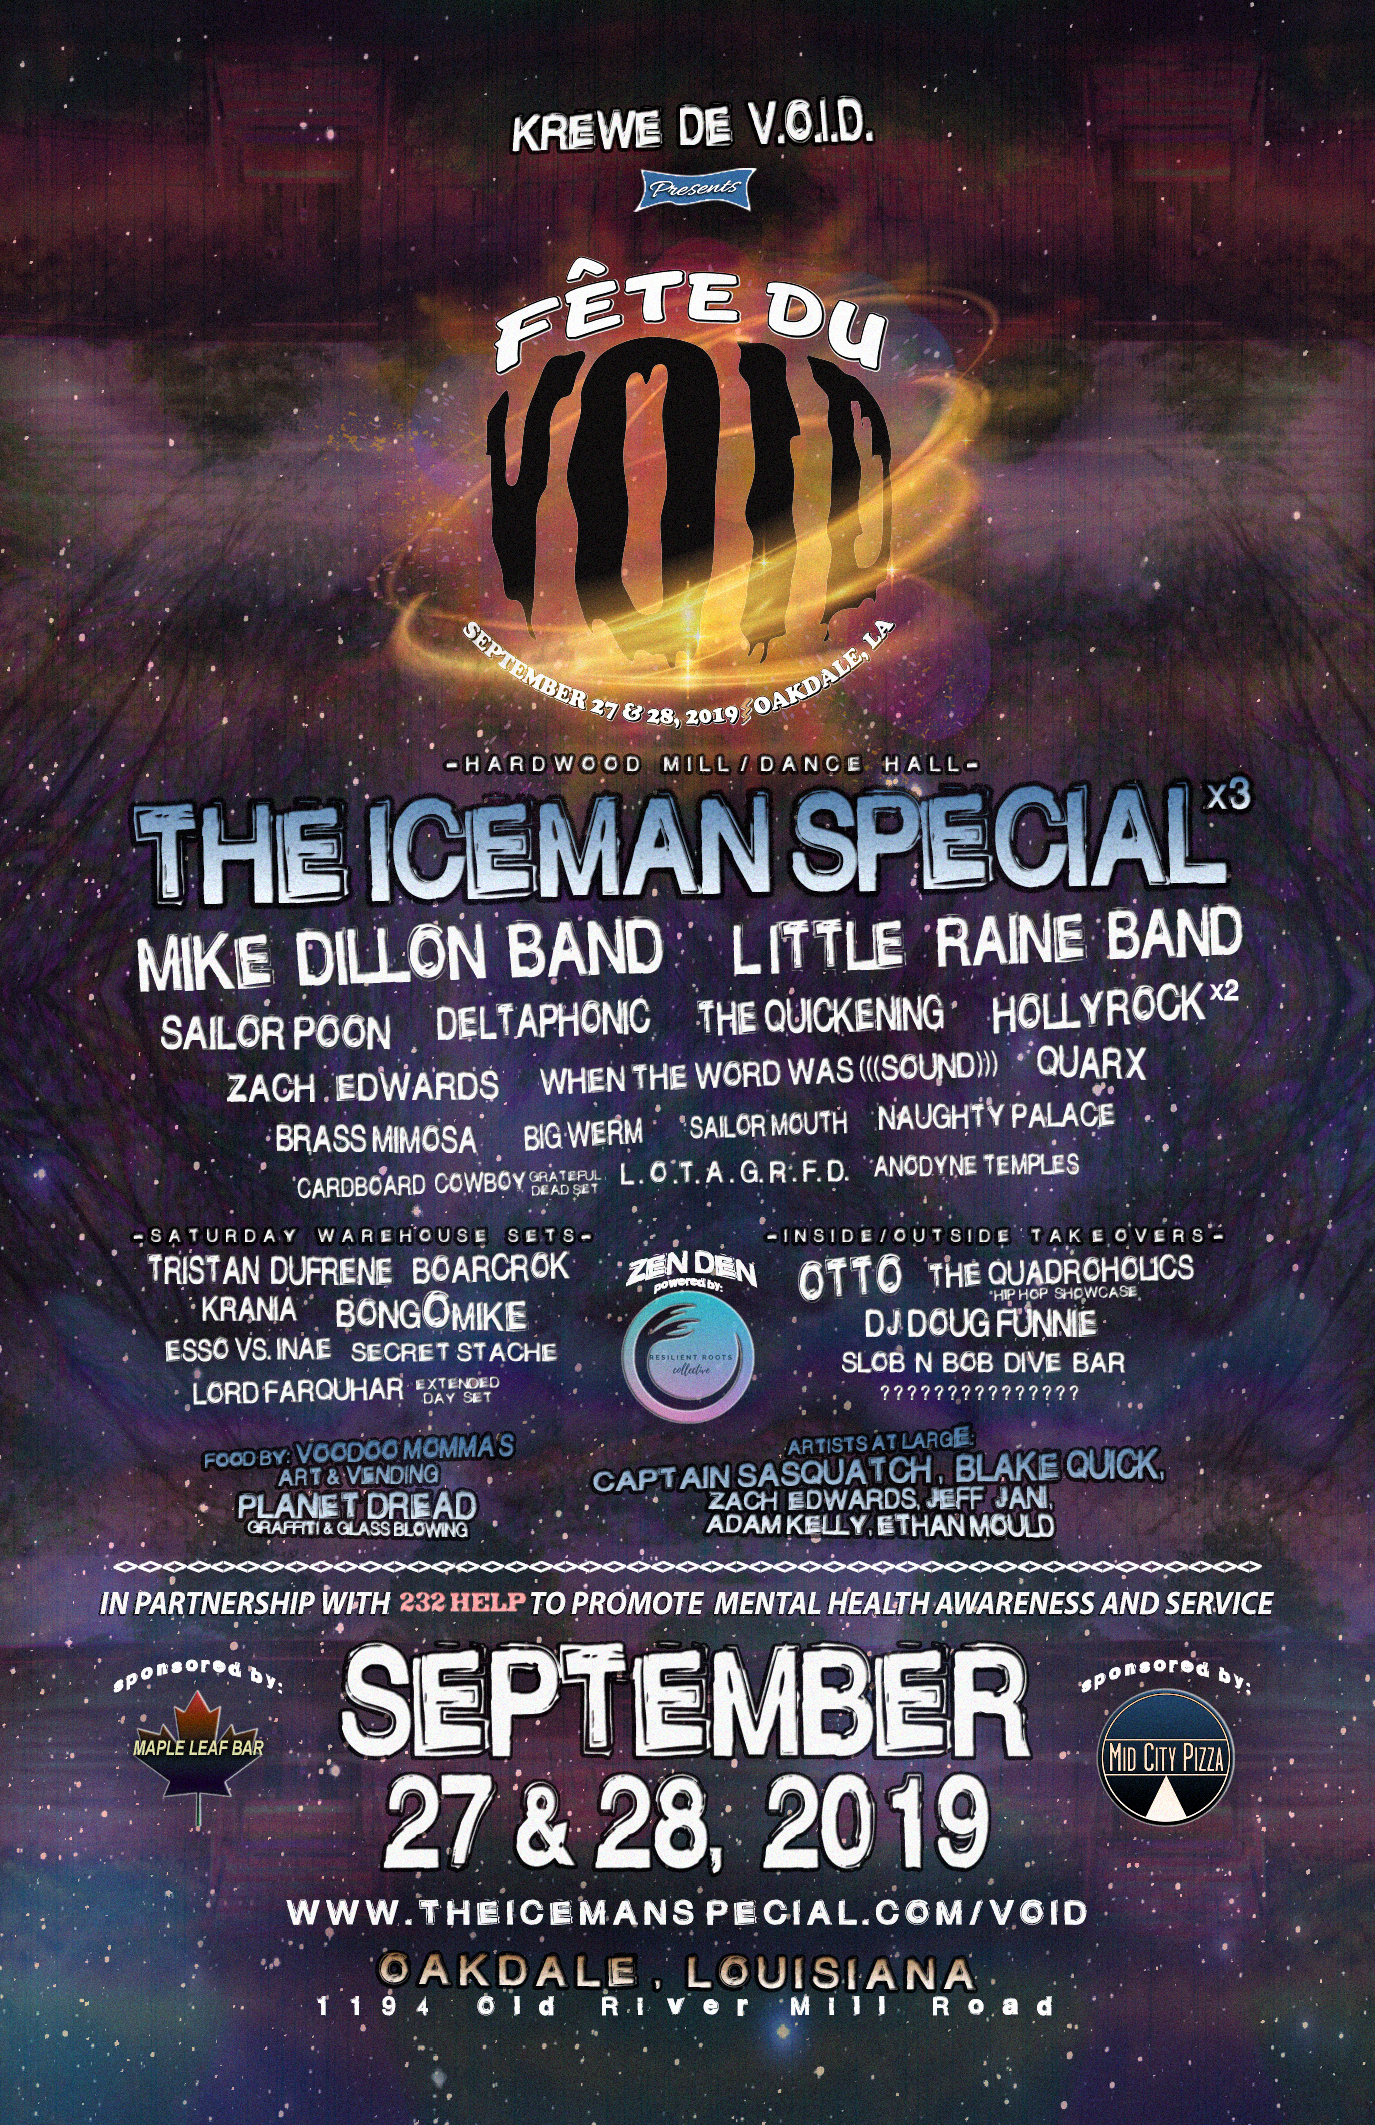 VOID – The Iceman Special